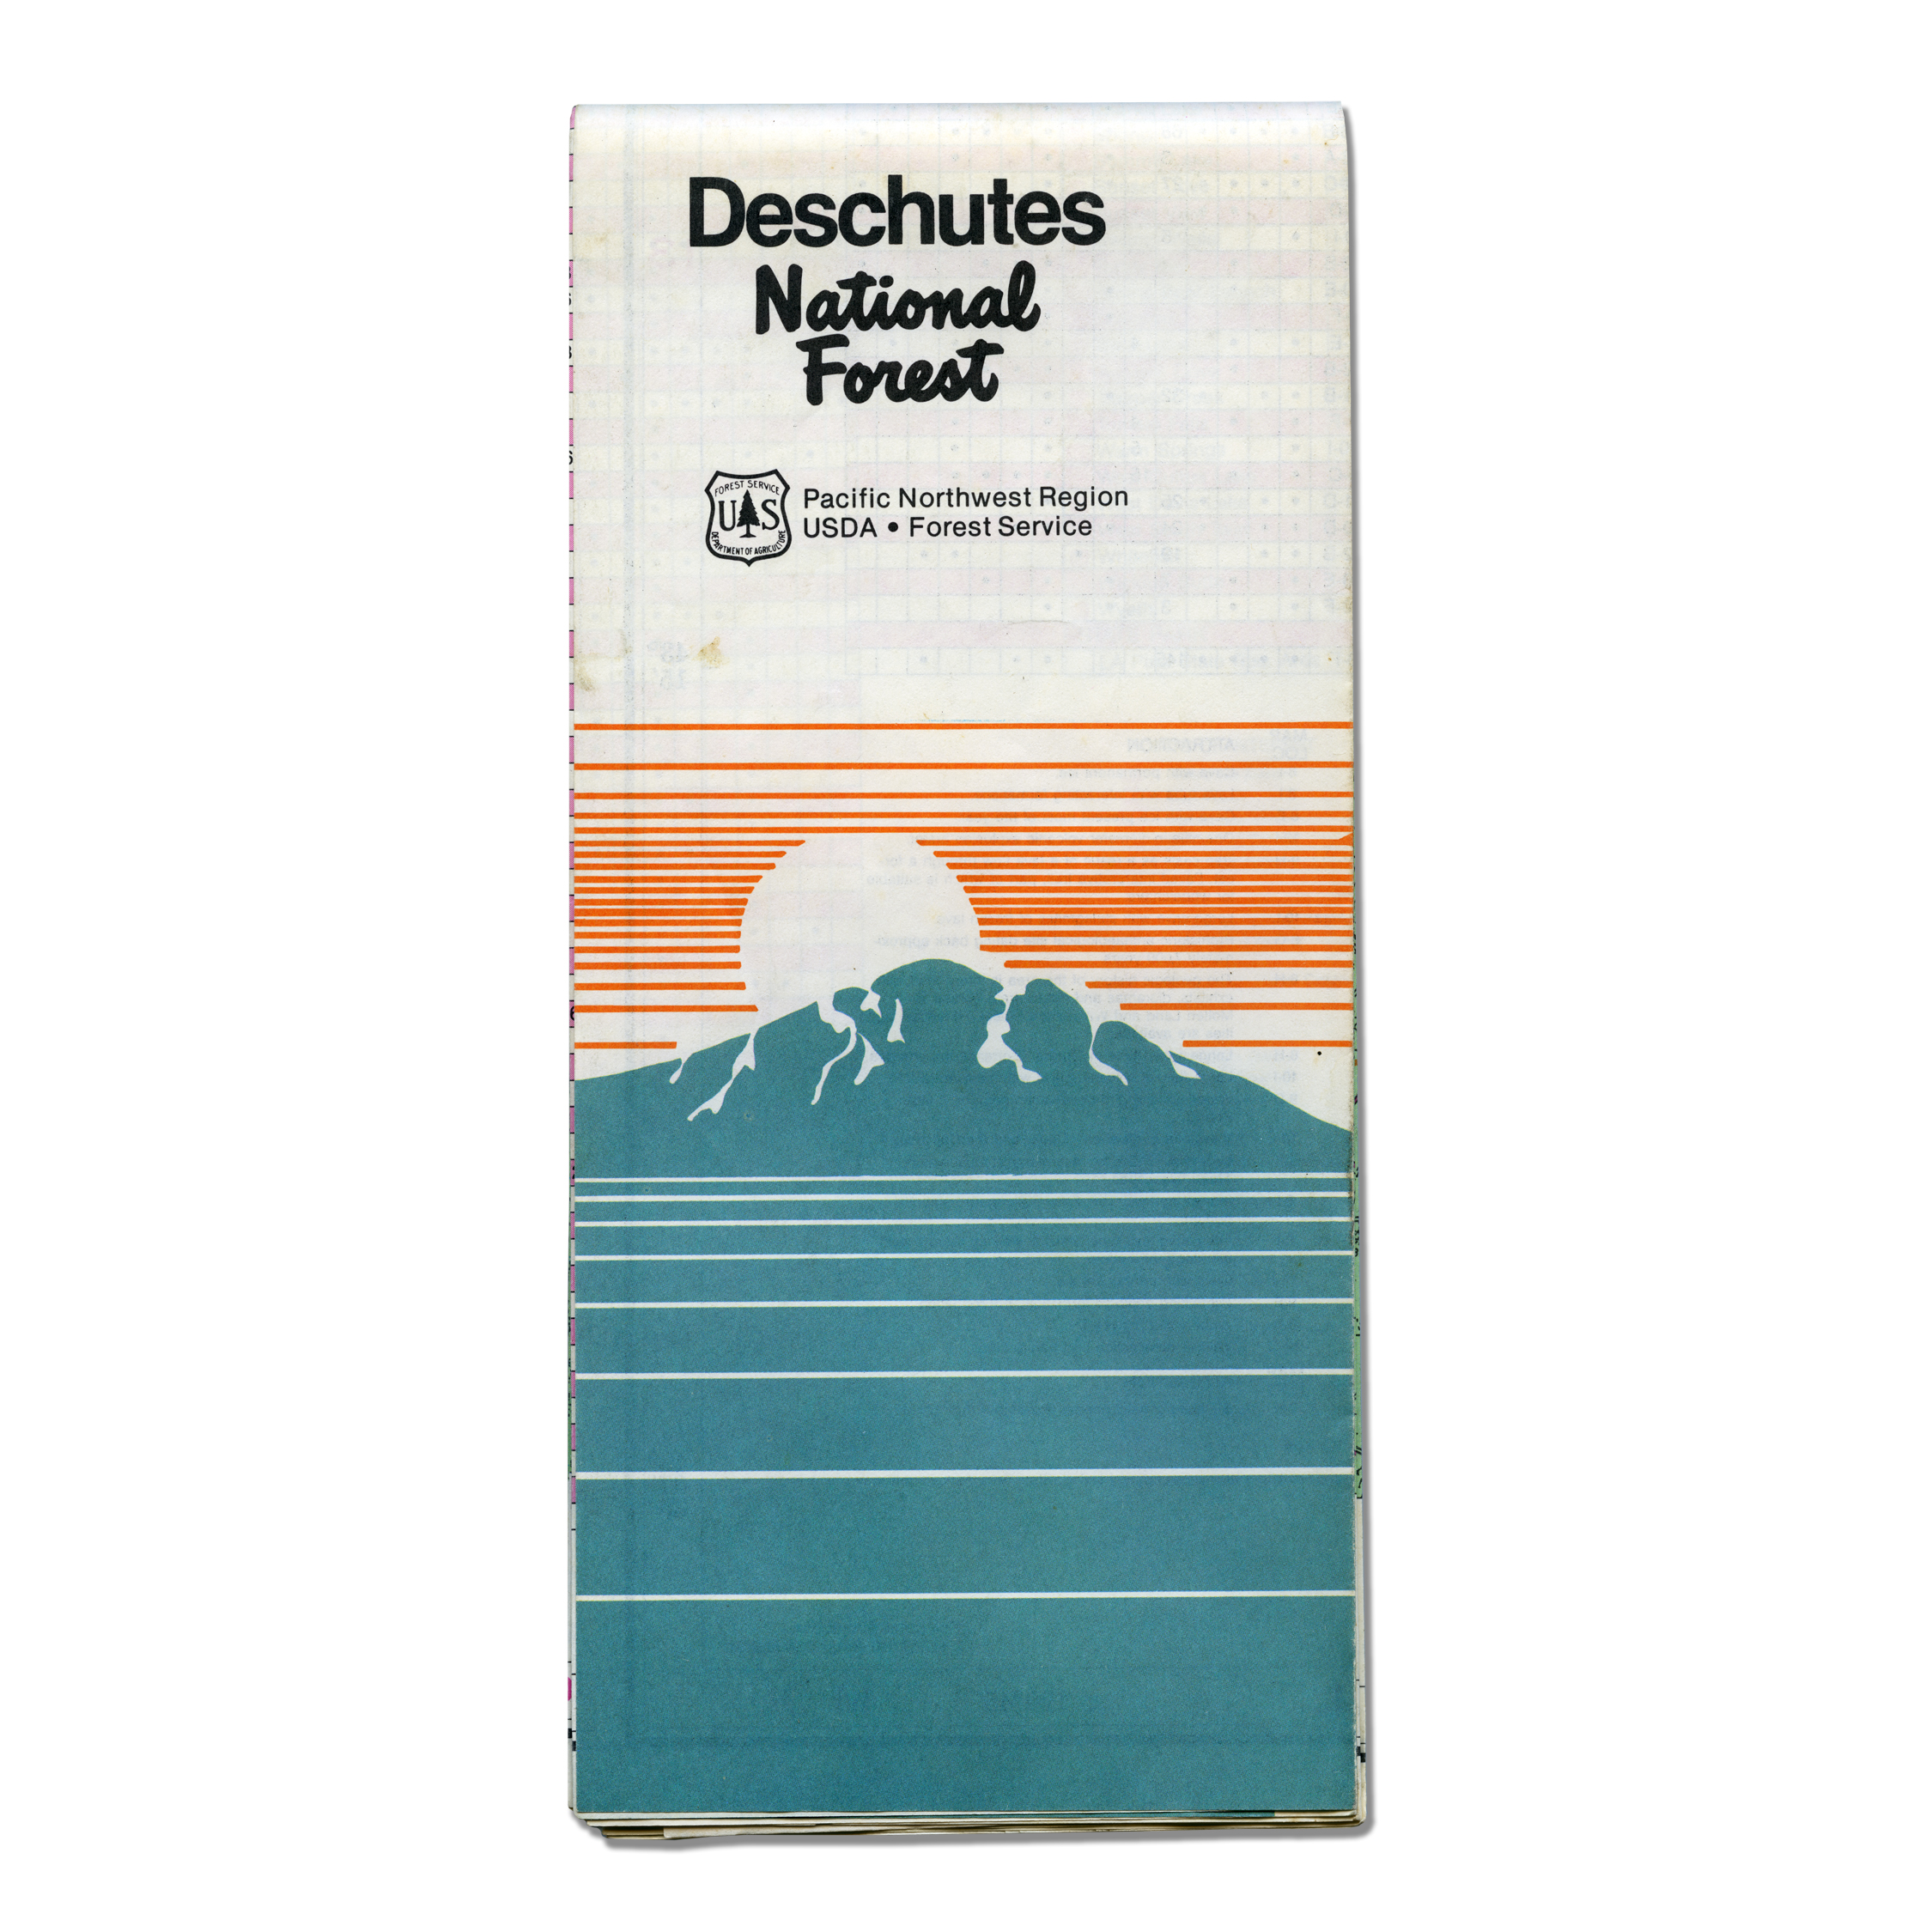 1988_deschutes_national_forest_brochure.jpg